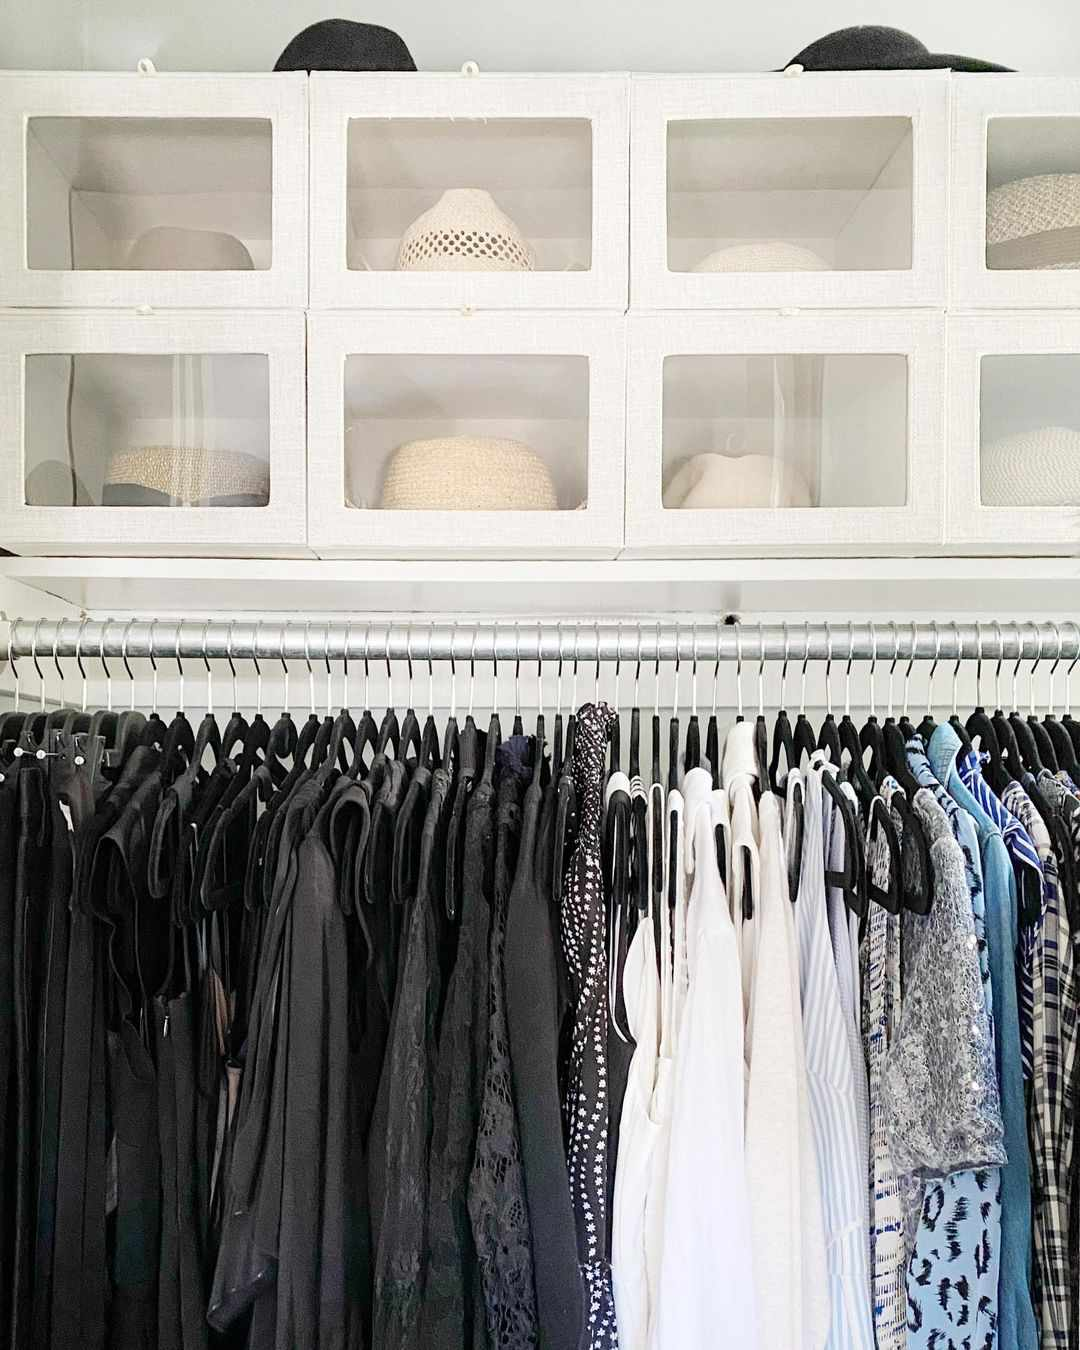 Closet with bins above the clothes